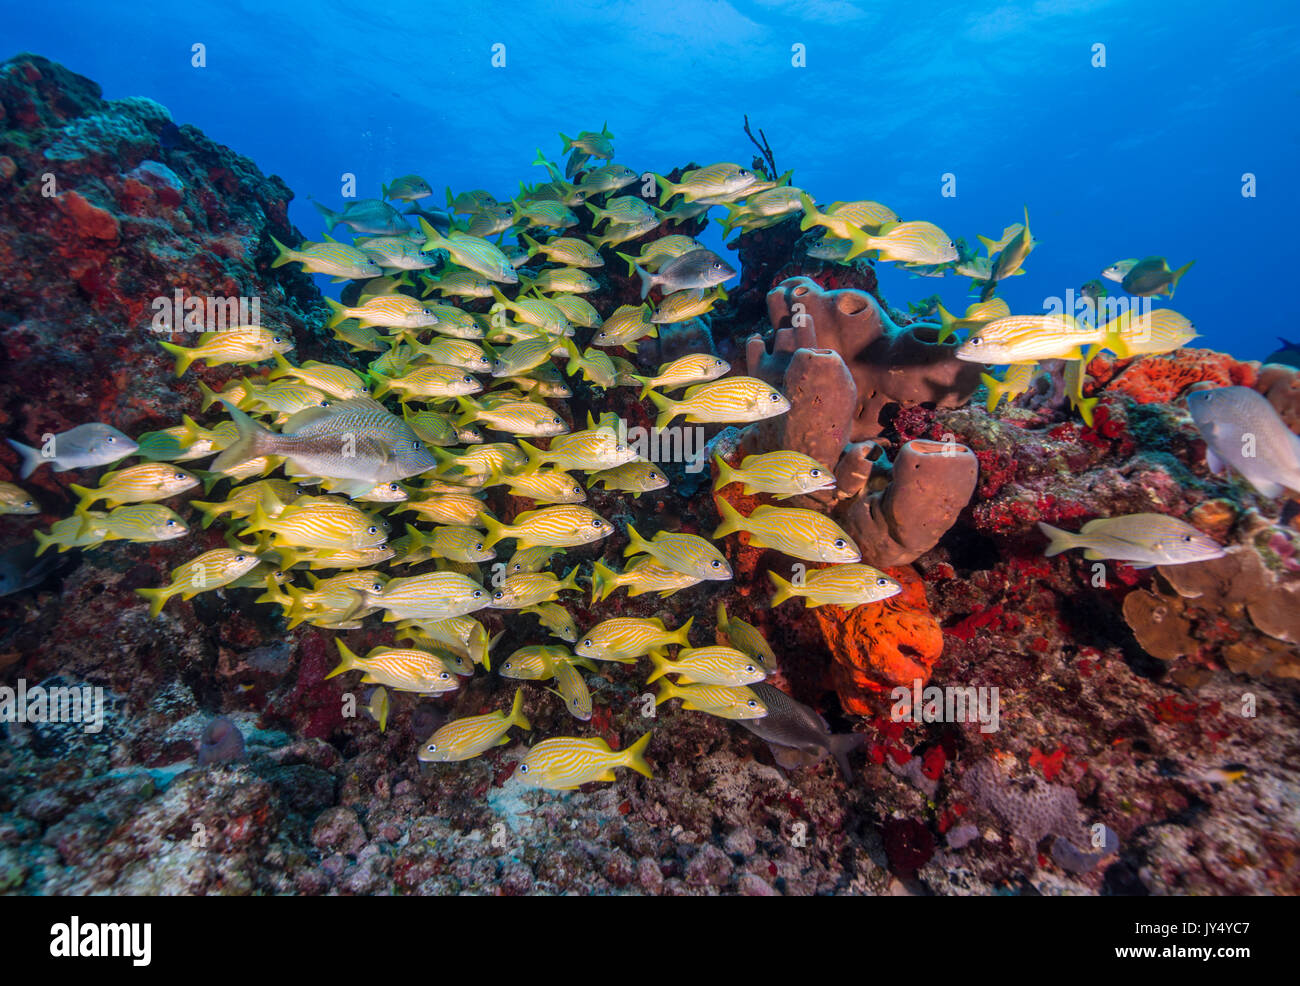 Large school of striped snapper swimming over the coral reef, Cabo Pulmo Marine Reserve, Mexico. - Stock Image